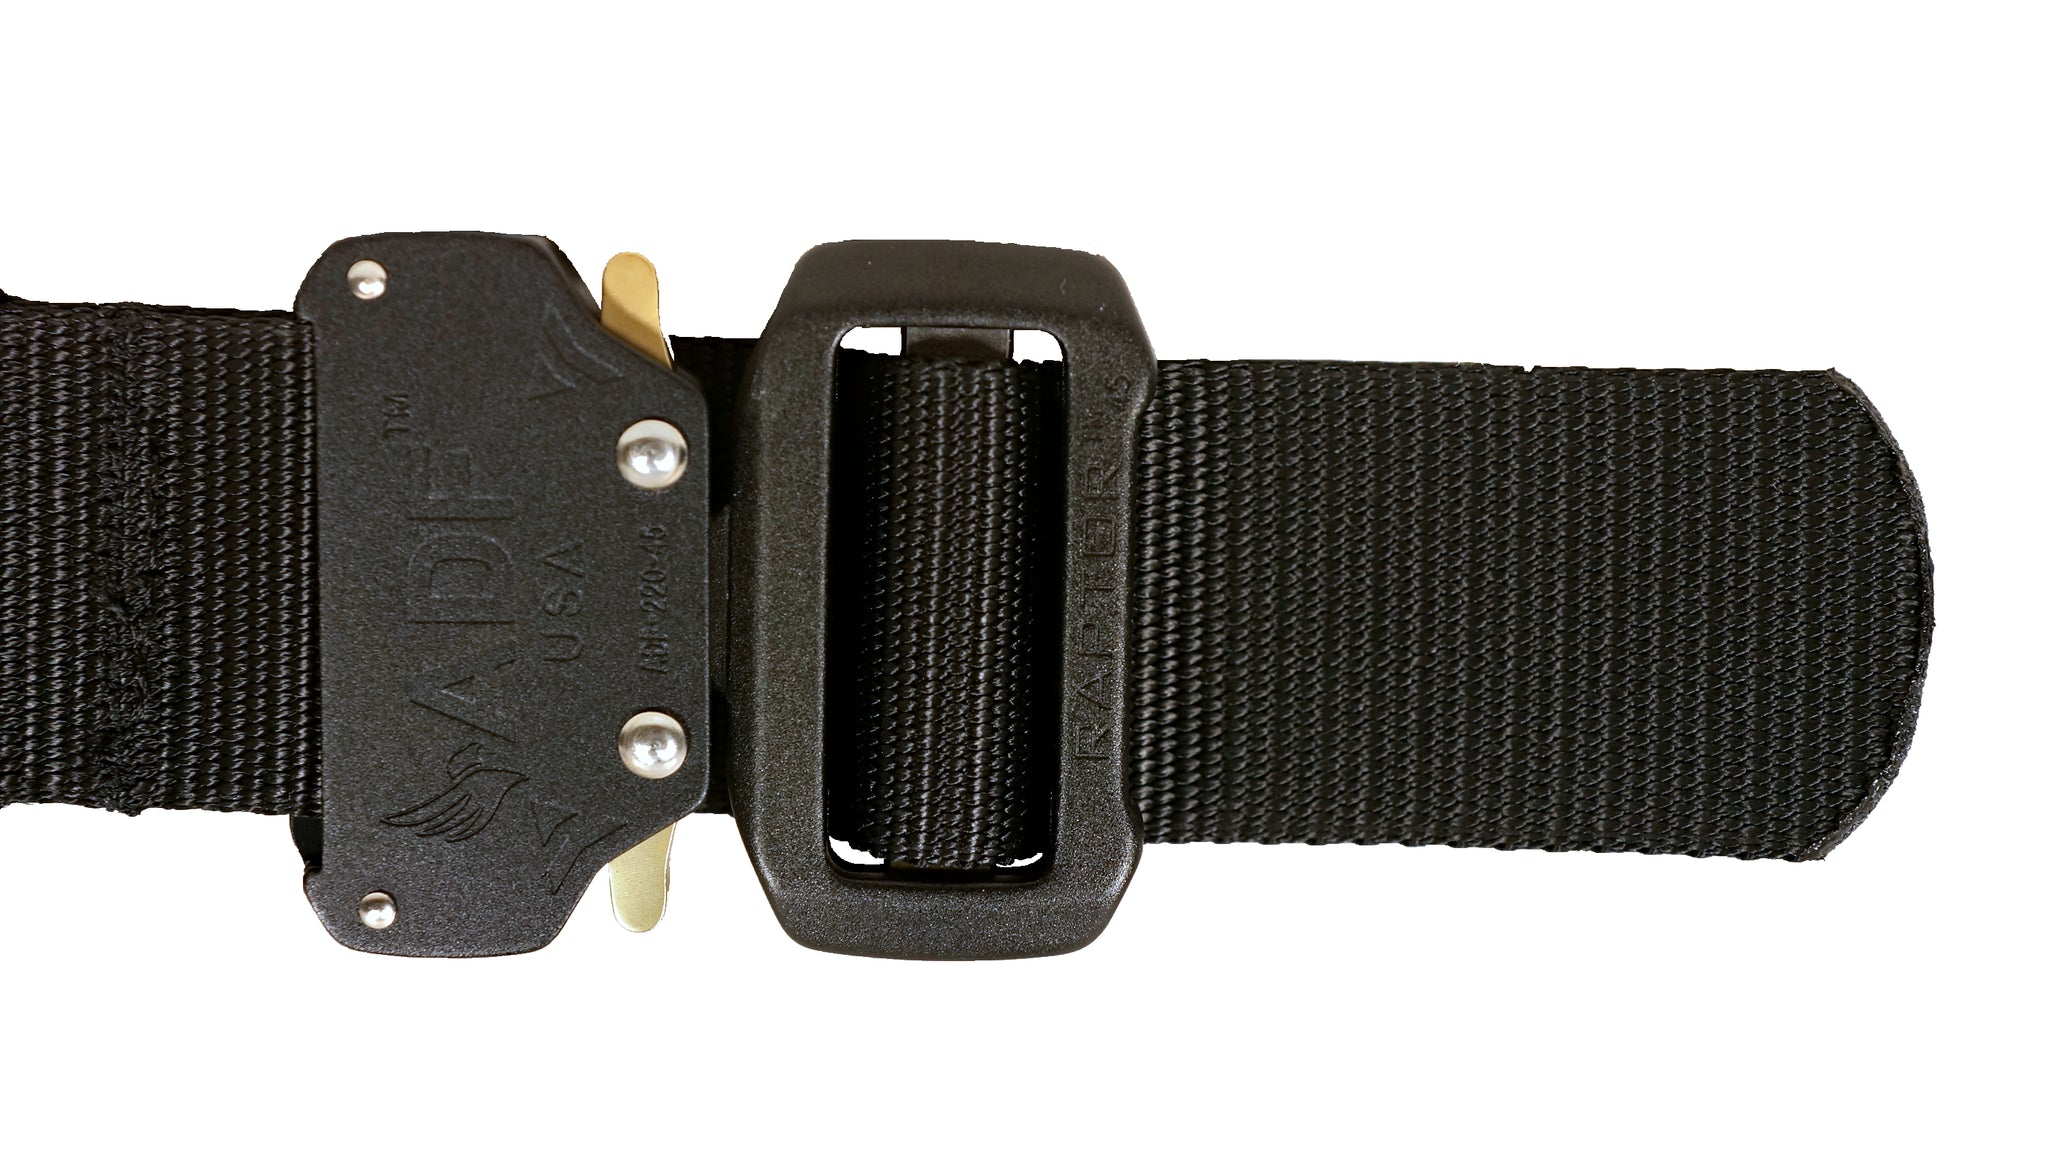 Black JBC WEB Belt: Zoomed-in view of Raptor buckle with quick release latches